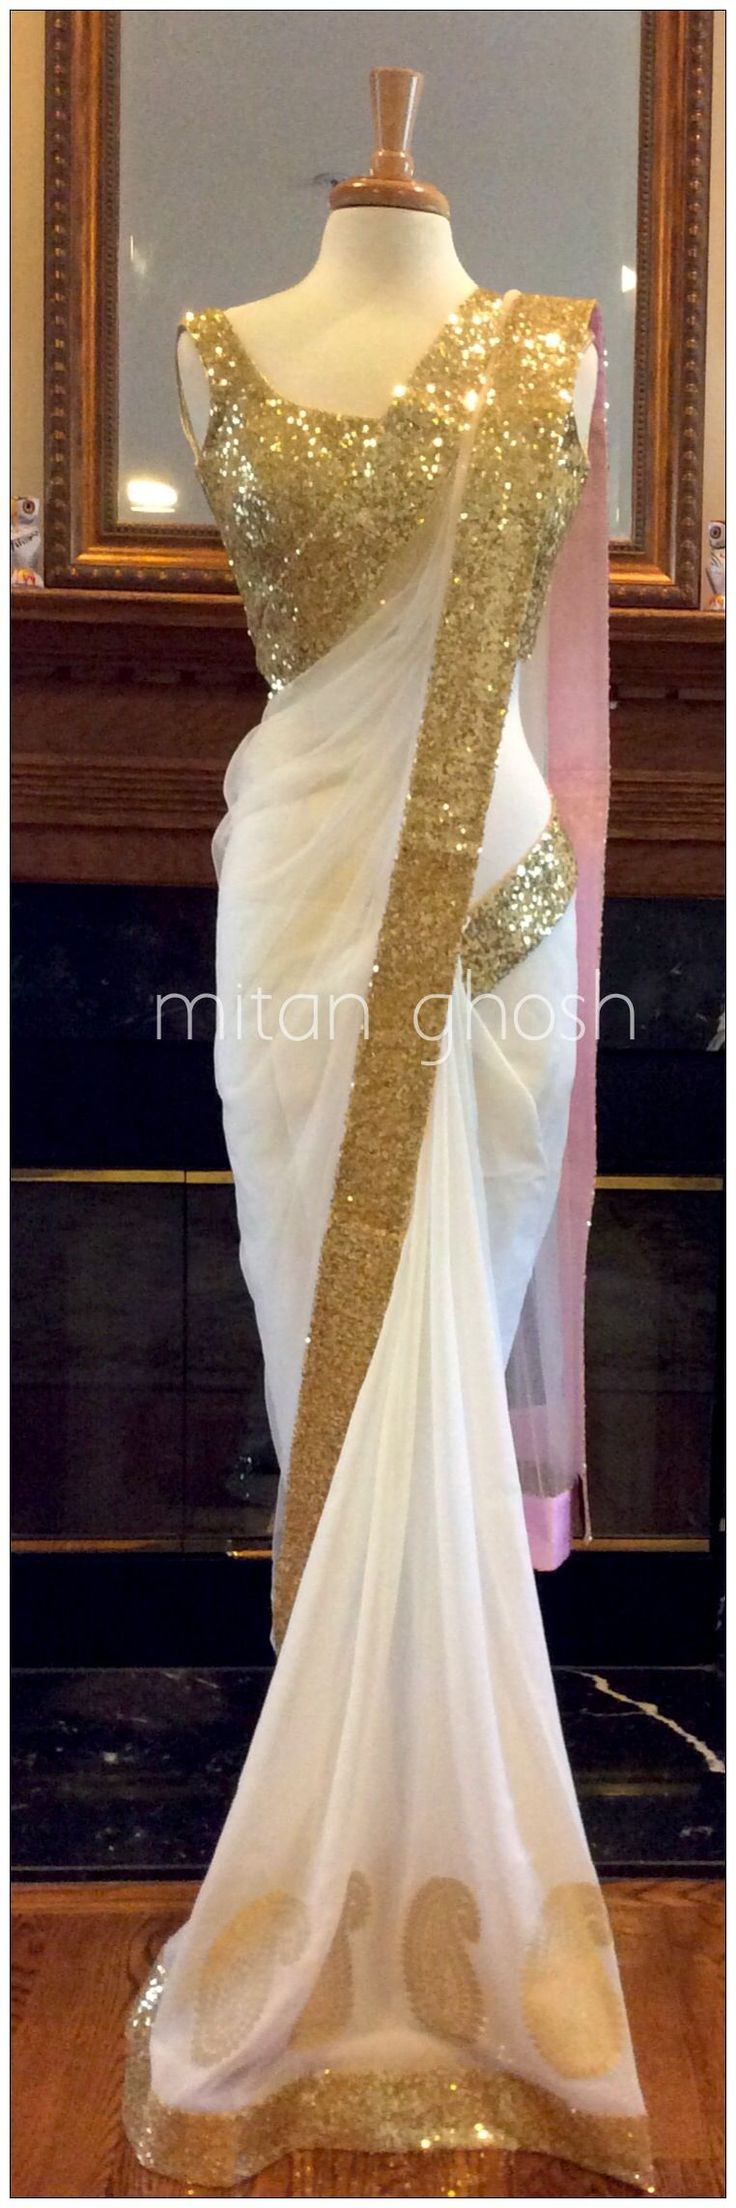 484 best kapre images on pinterest india fashion indian for Find me a dress to wear to a wedding